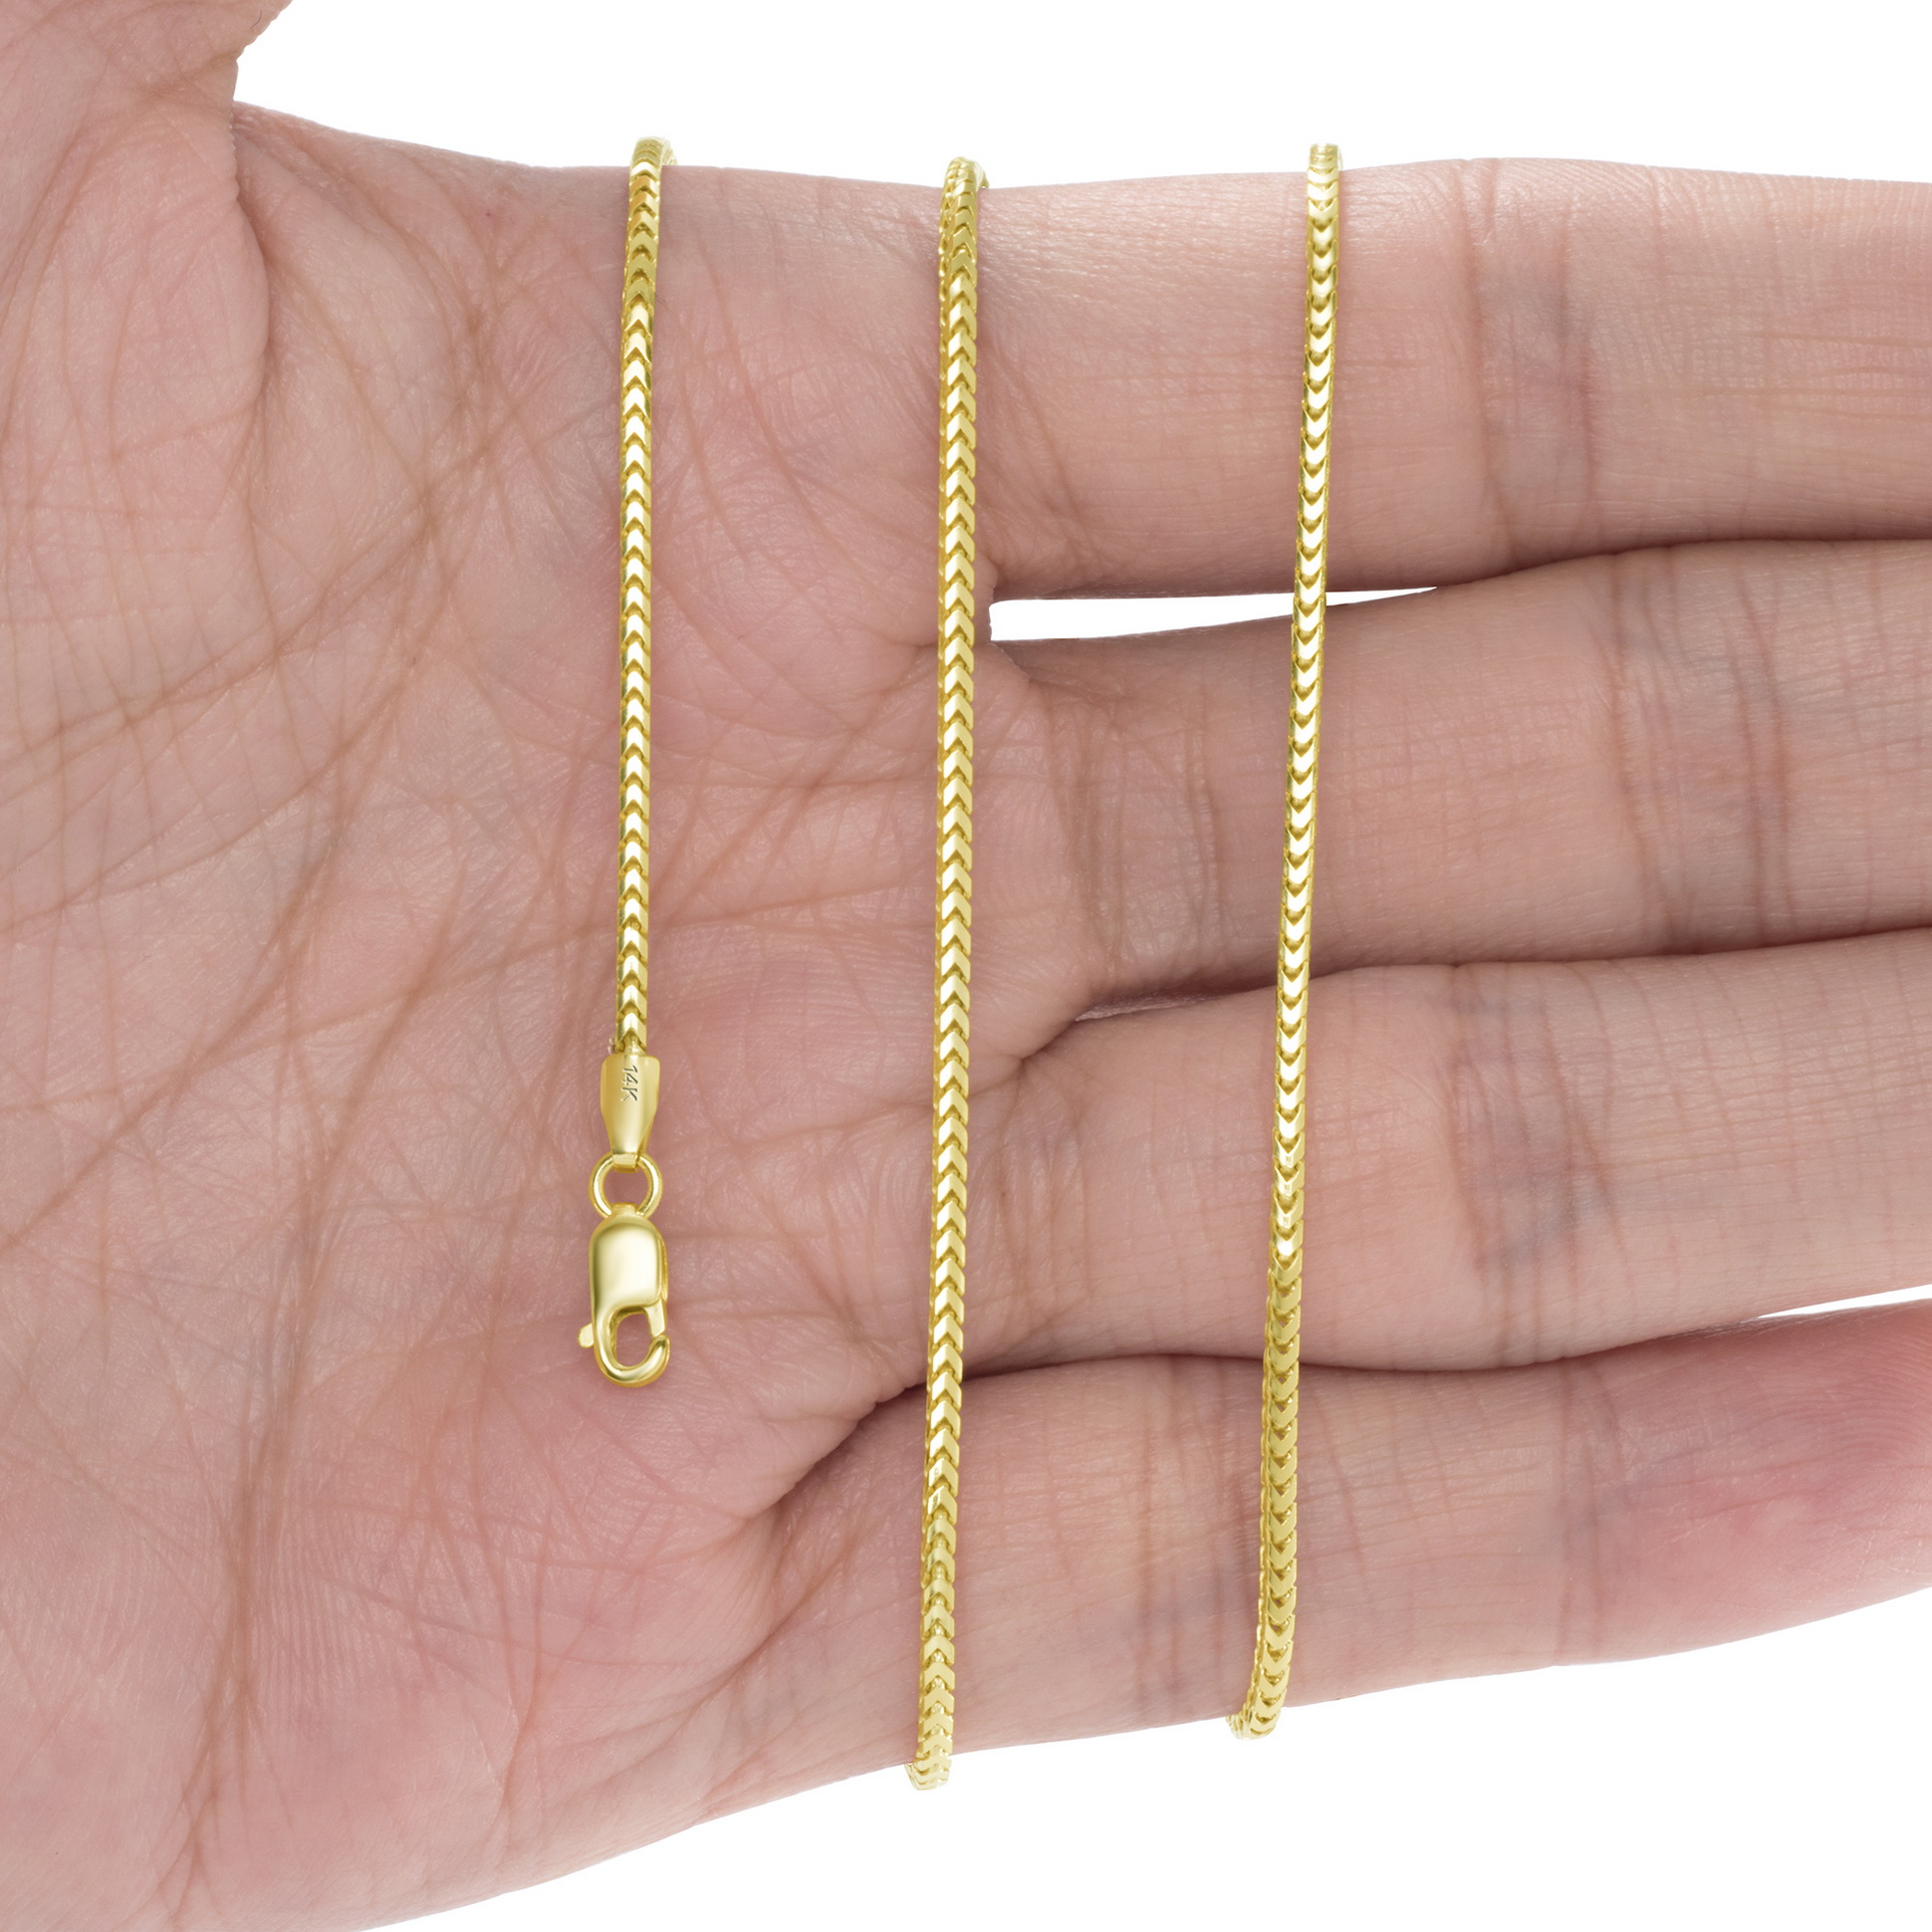 14K-Yellow-Gold-Solid-0-9mm-6mm-Round-Box-Franco-Chain-Pendant-Necklace-16-034-30-034 thumbnail 17